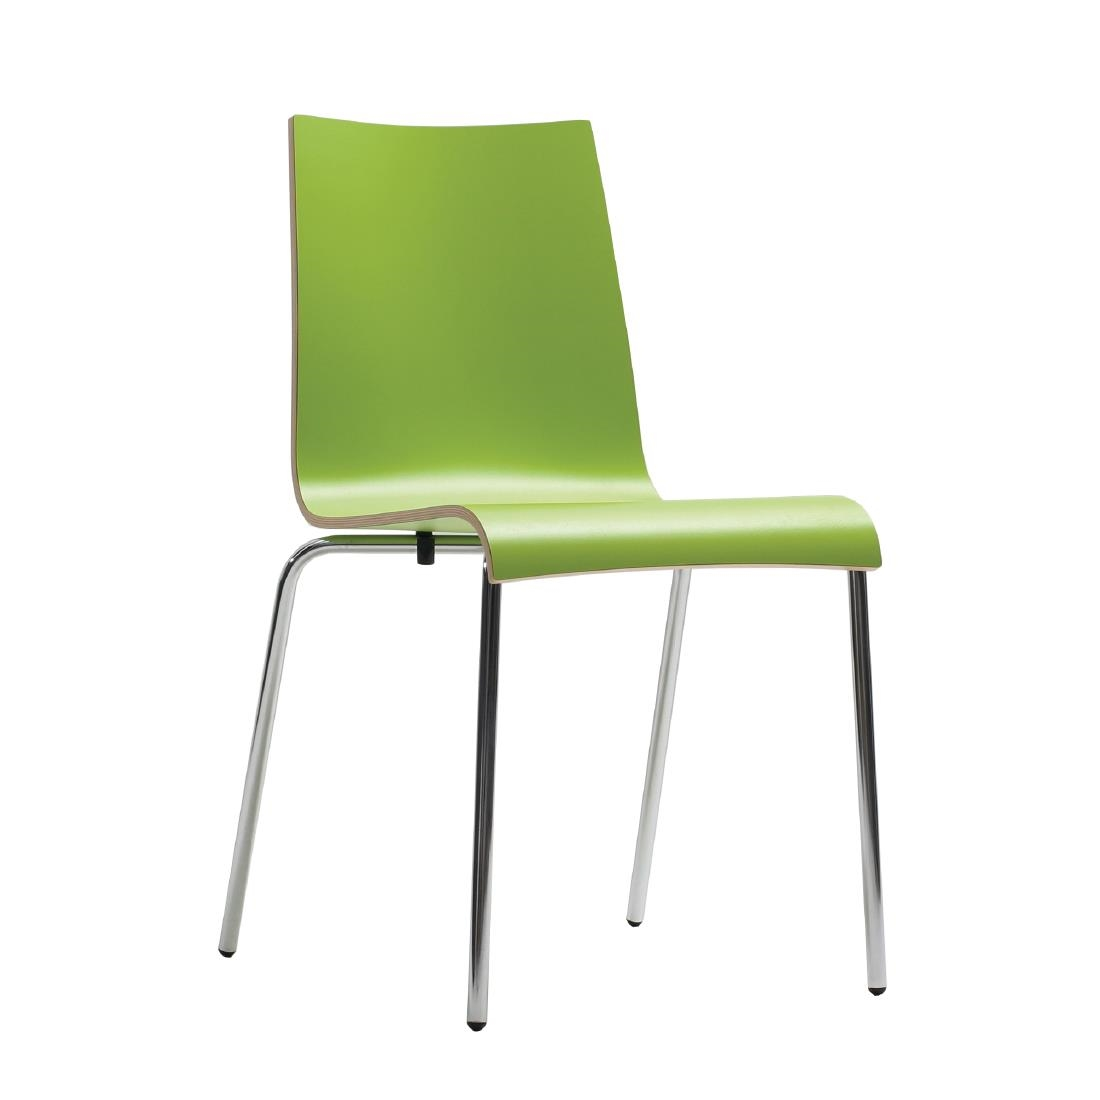 Lime Green Chairs Bolero Plyform Stacking Side Chairs Lime Green Pack Of 4